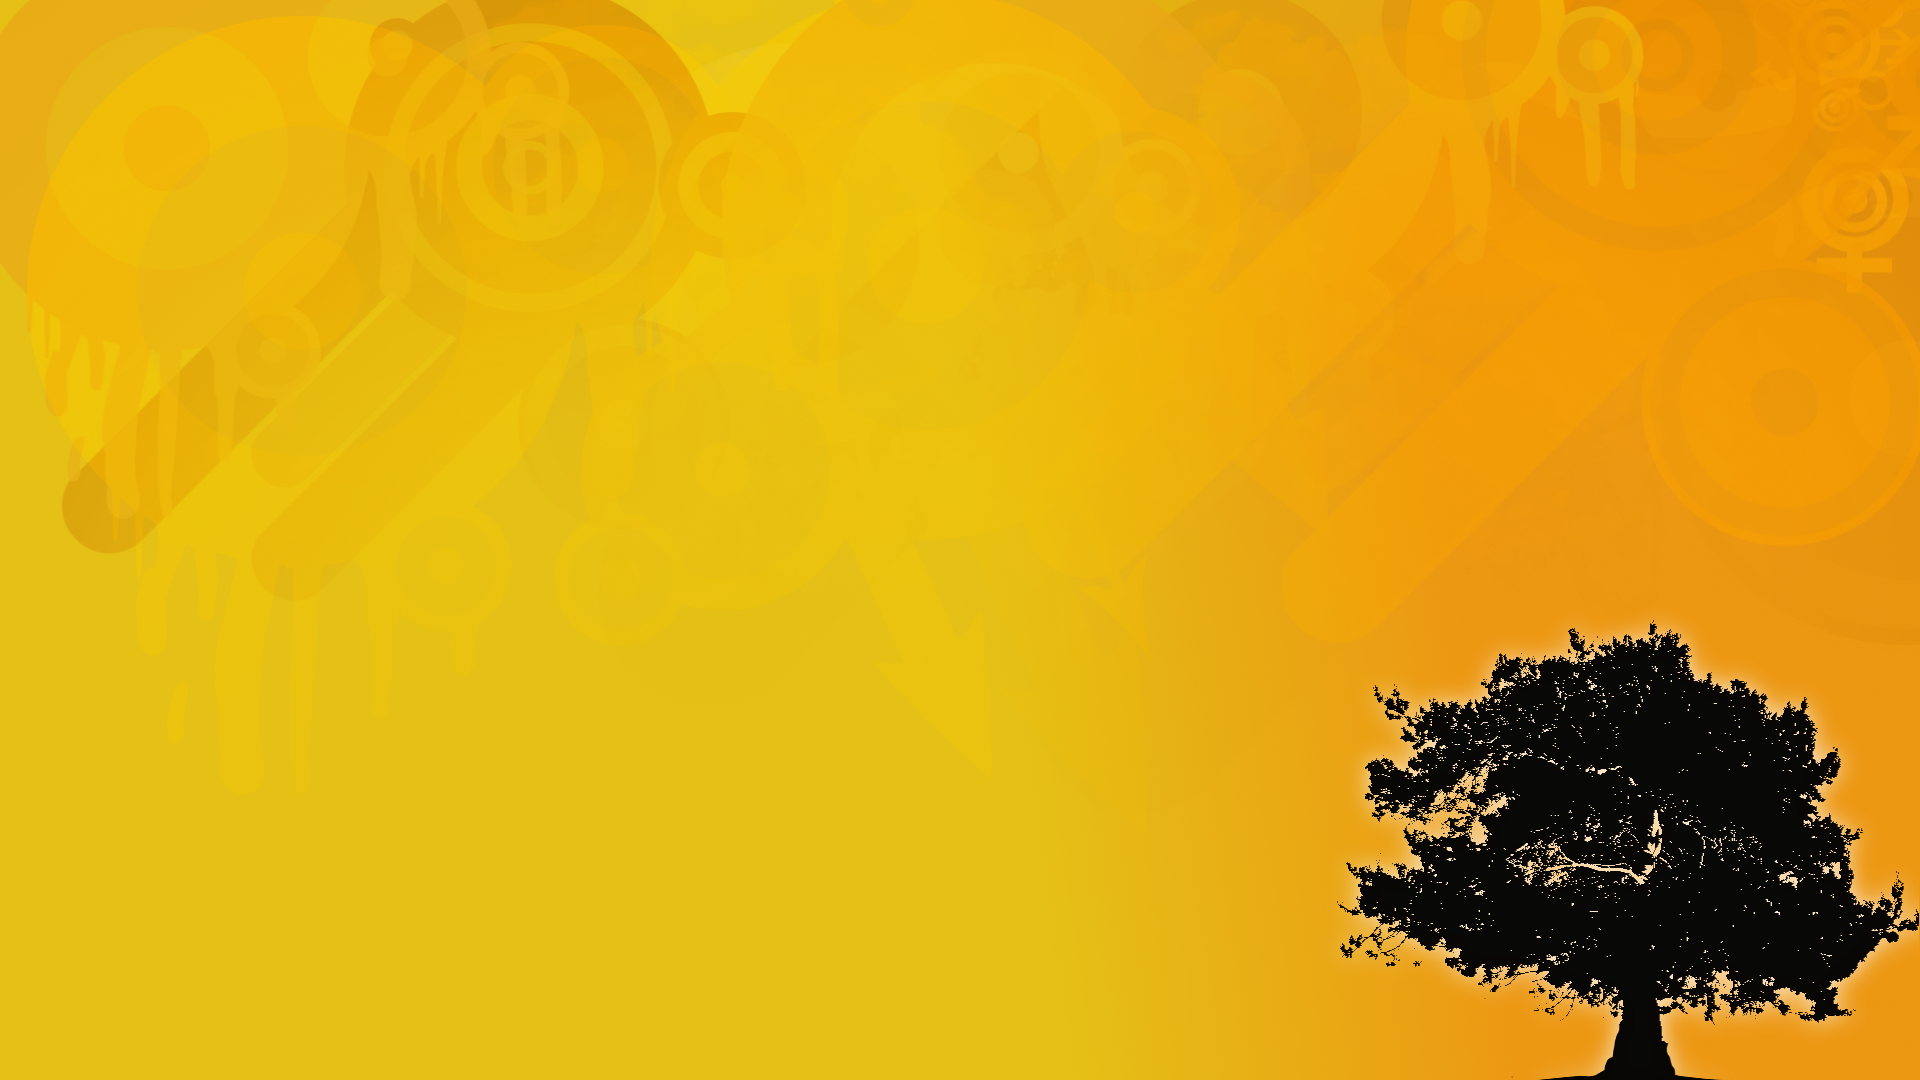 http://fc07.deviantart.net/fs29/f/2008/181/7/5/HD_Vector_Tree_Wallpaper_1080p_by_FreedDeamon.png